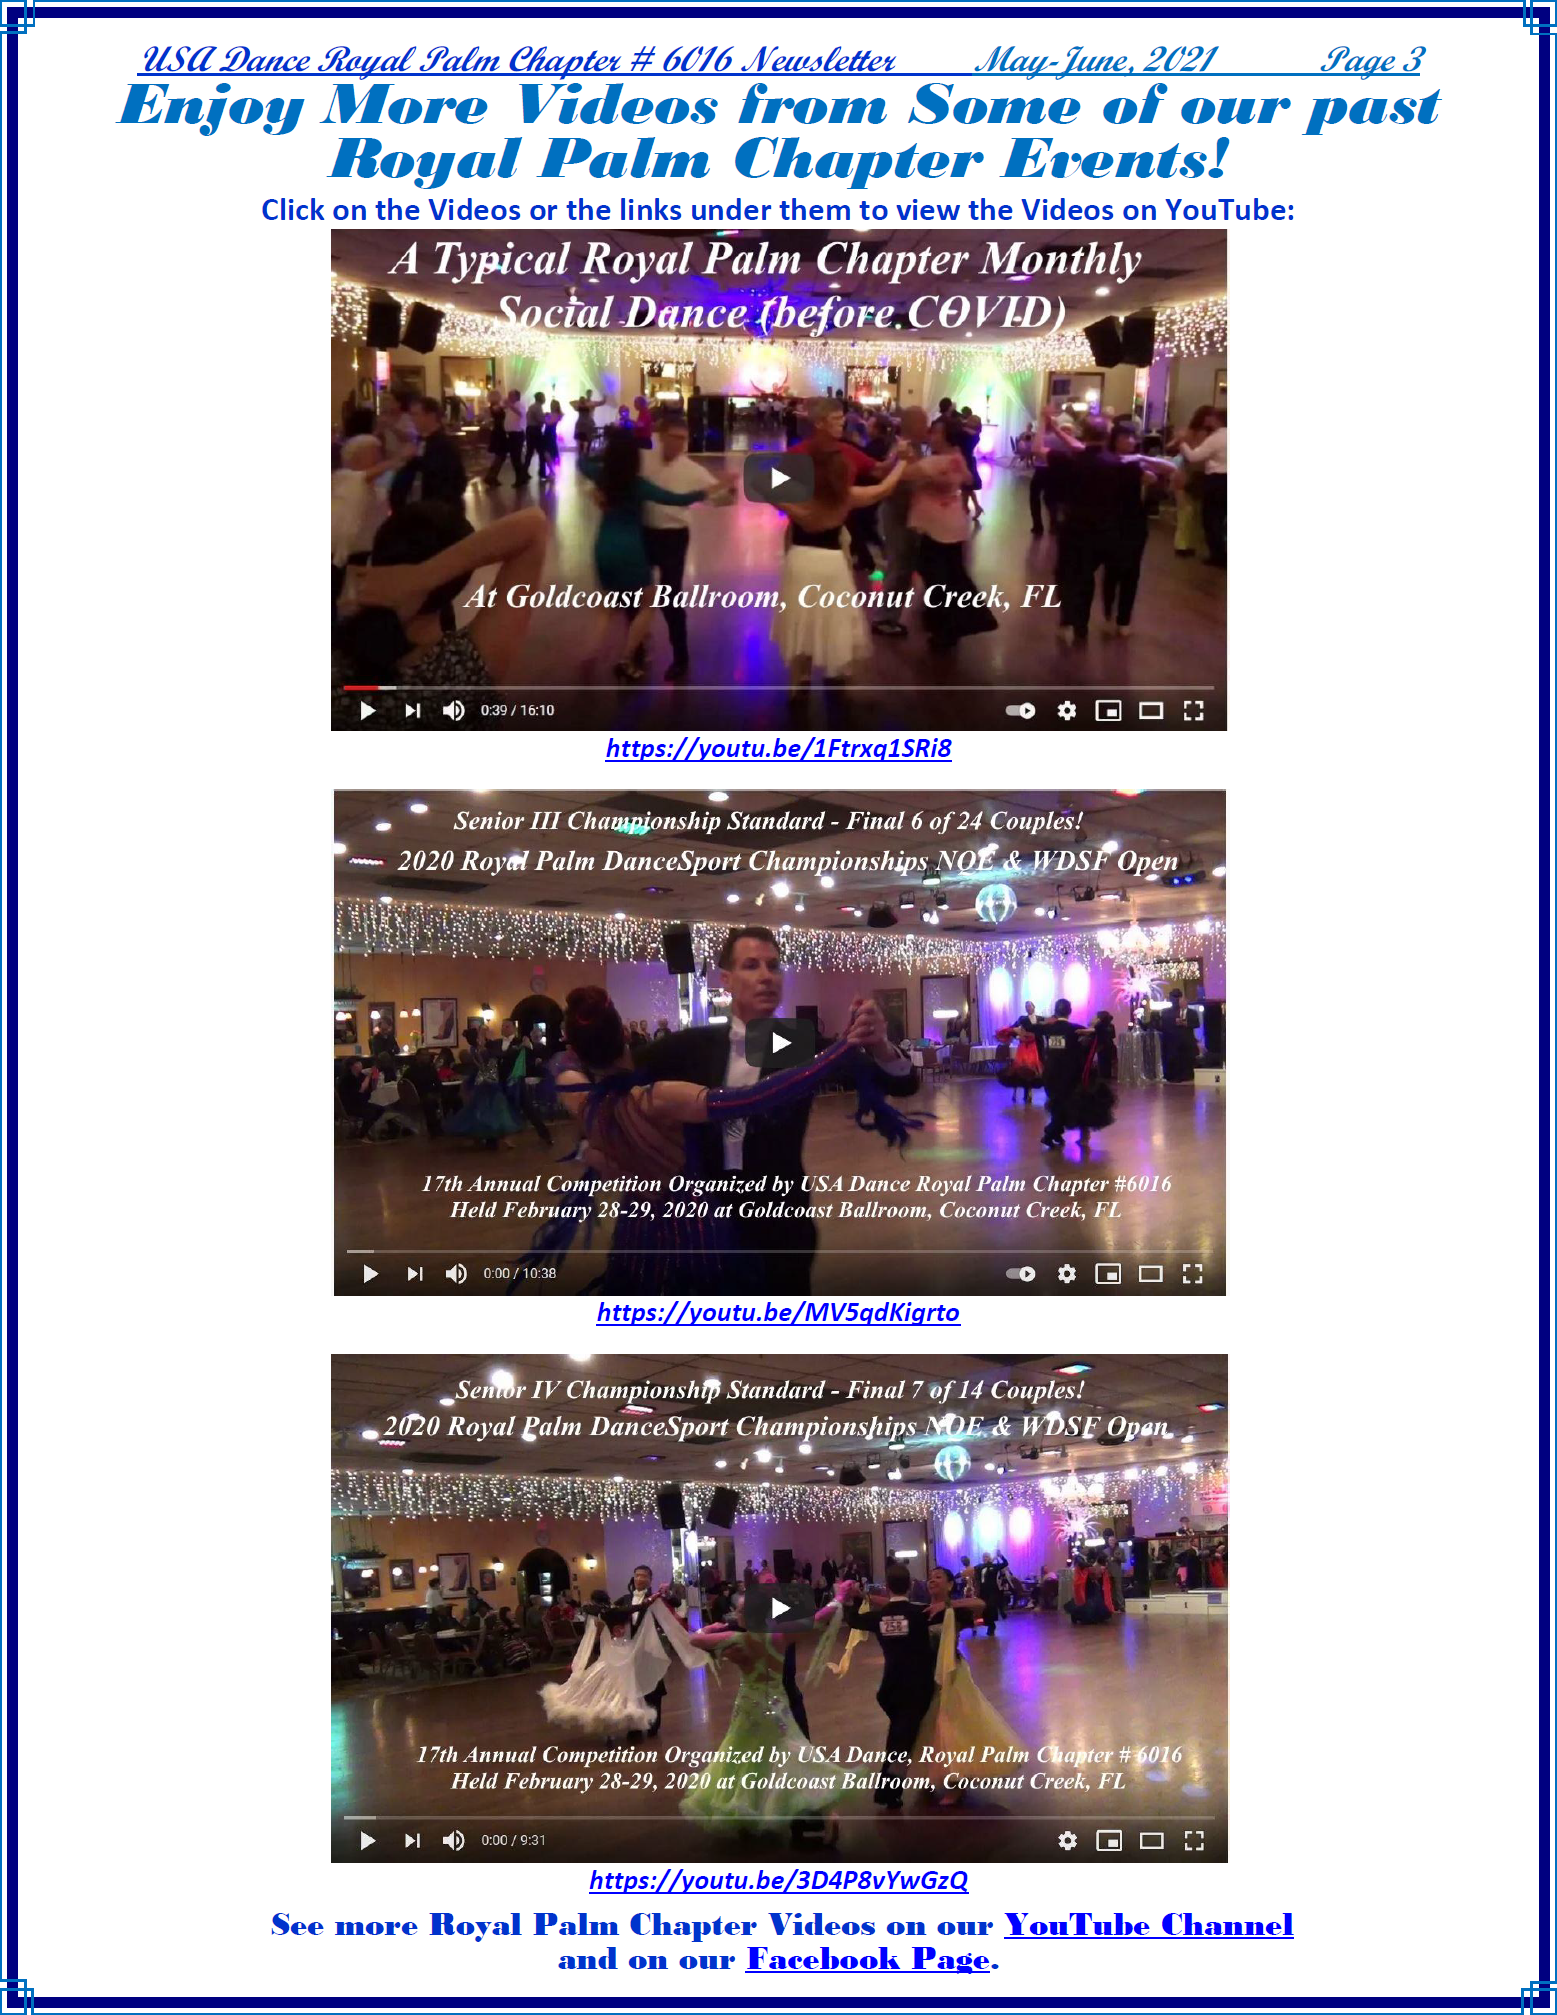 Royal Palm Chapter May-June, 2021 Newsletter - Page 3